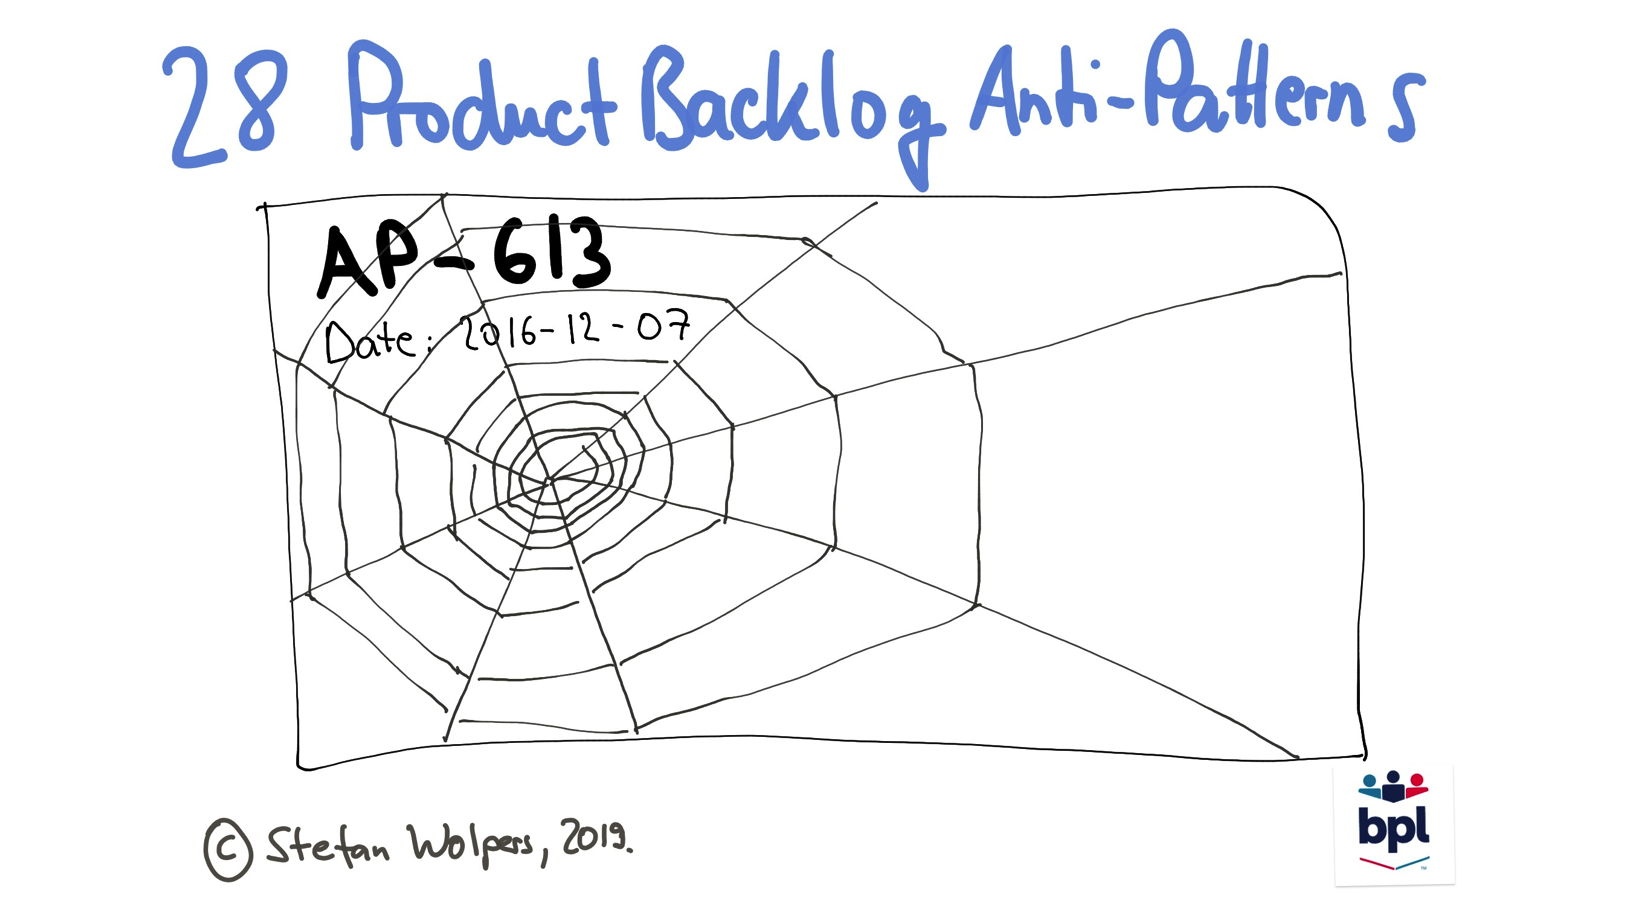 28 Product Backlog Anti-Patterns — Berlin Product People GmbH